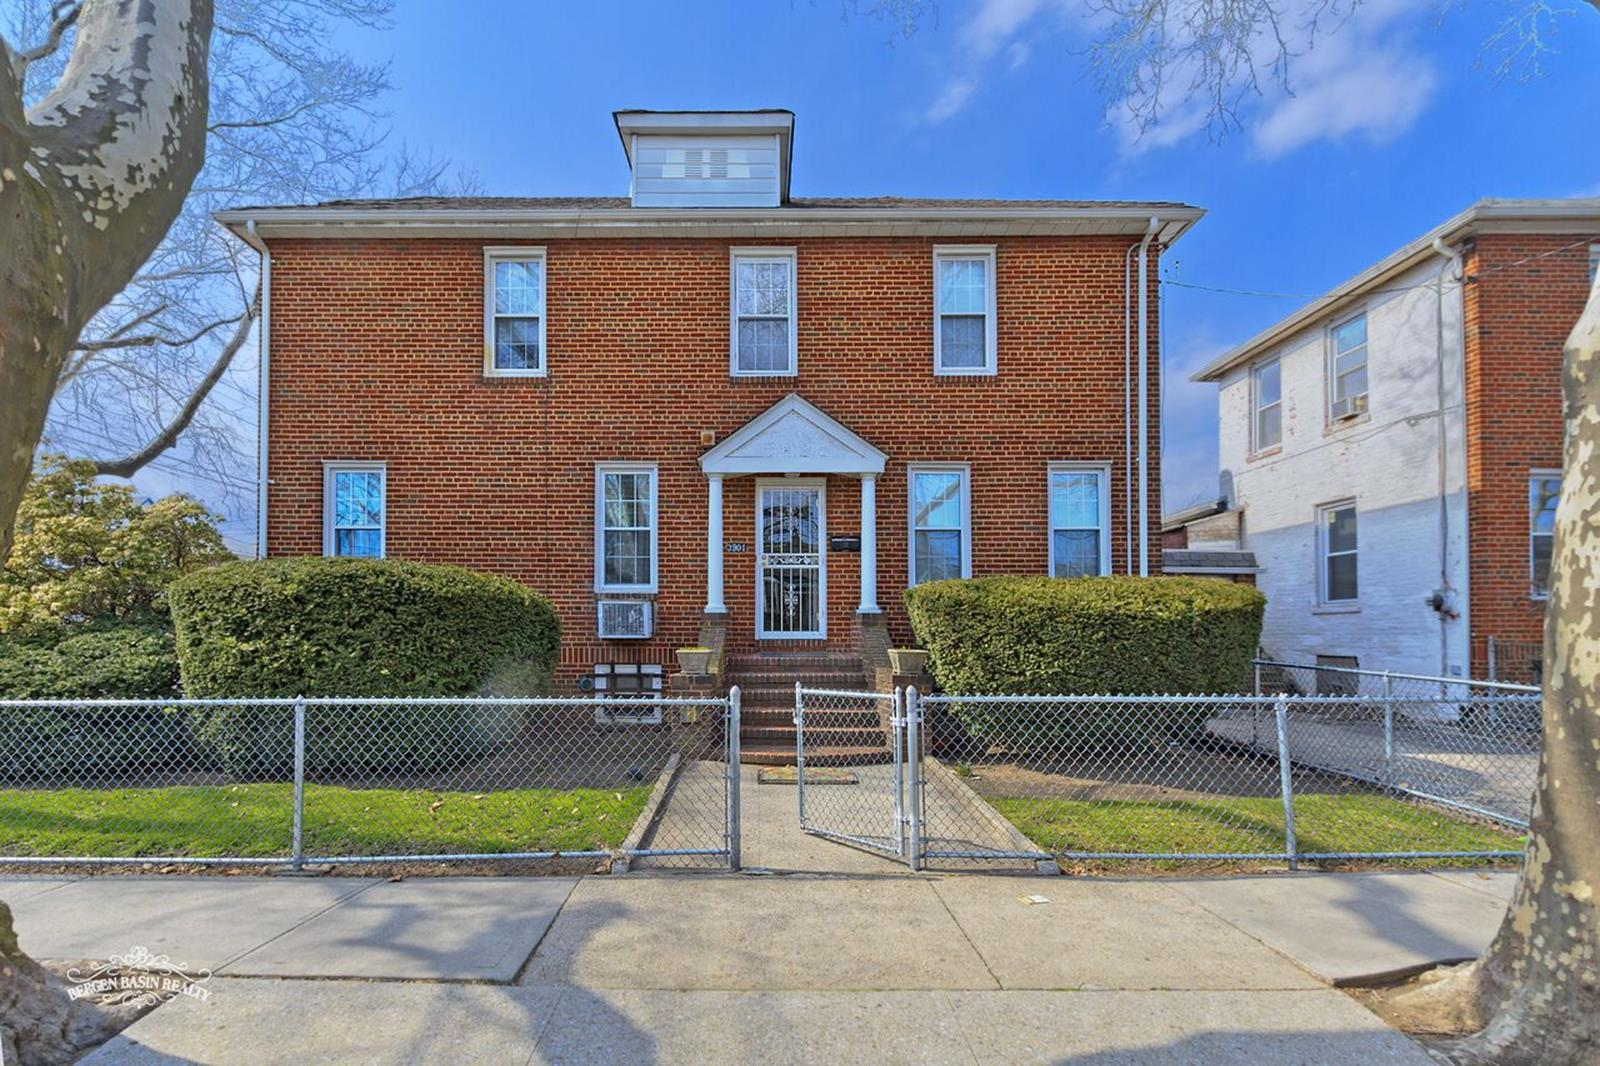 Bergen basin realty 3901 fillmore avenue marine park brooklyn ny 11234 3901 fillmore avenue marine park brooklyn ny malvernweather Image collections